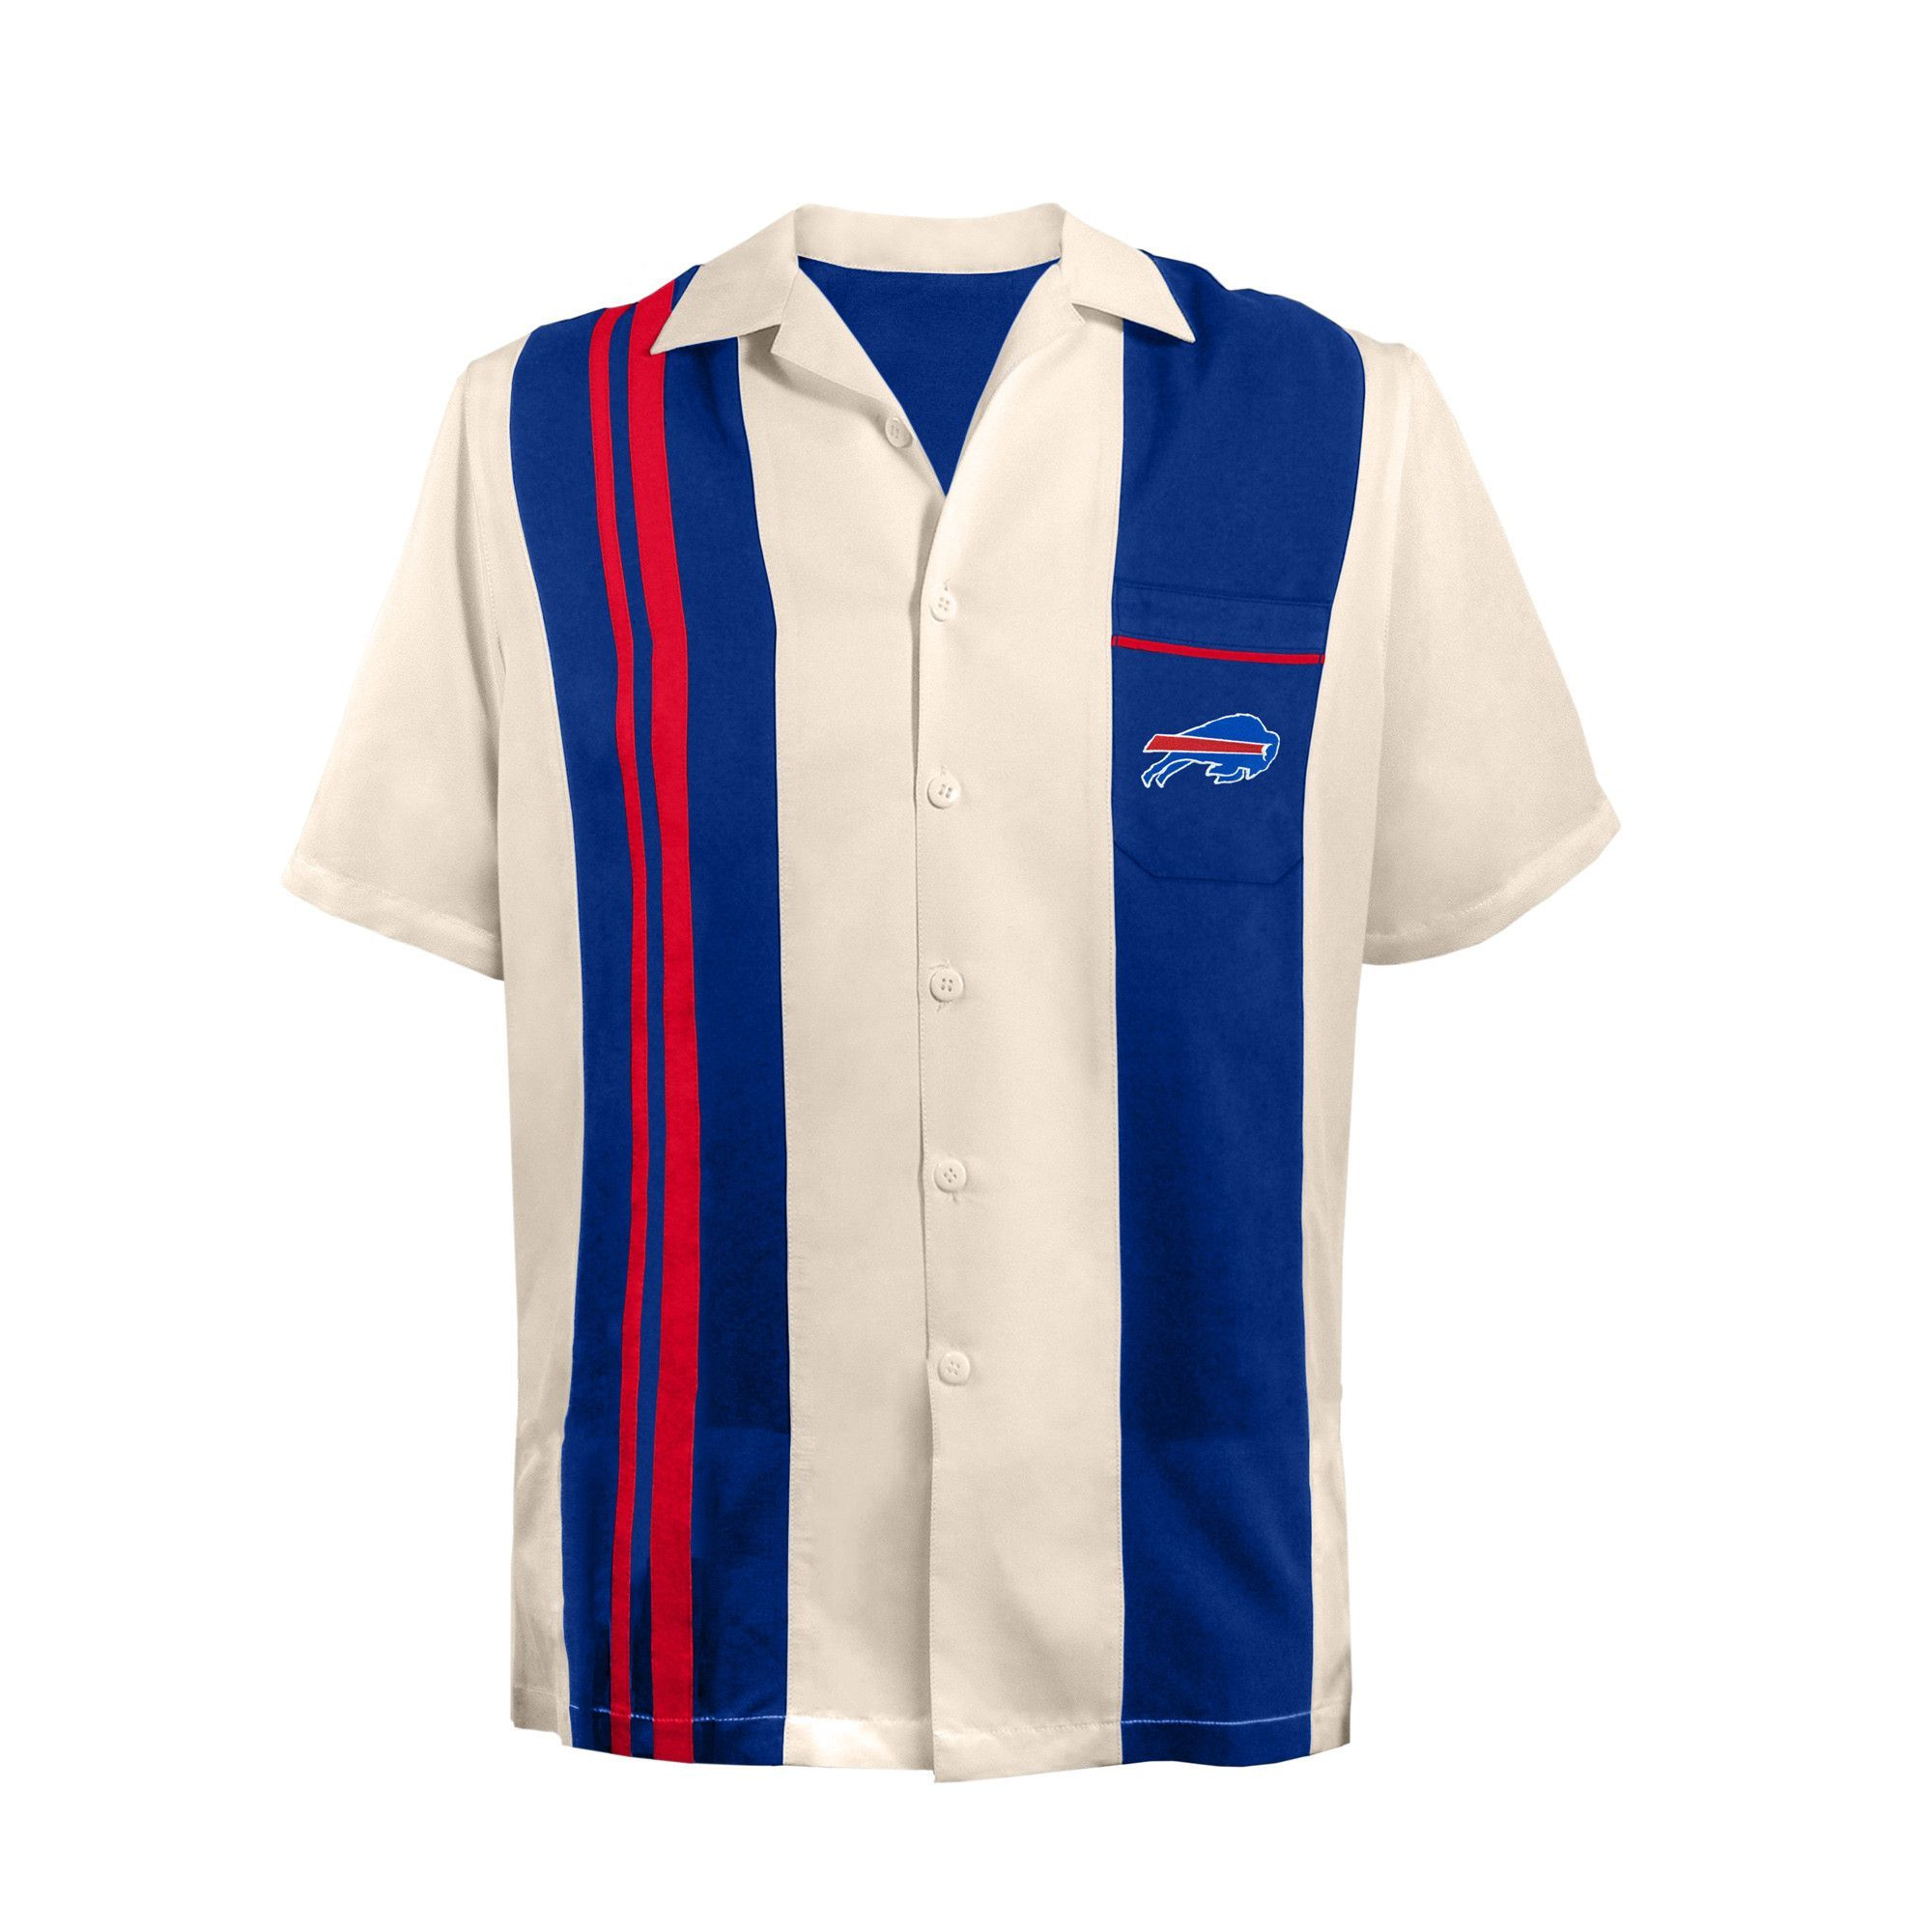 602df3aef60 BUFFALO BILLS BOWLING SHIRT SPARE. BUFFALO BILLS BOWLING SHIRT SPARE Green  Bay Packers ...